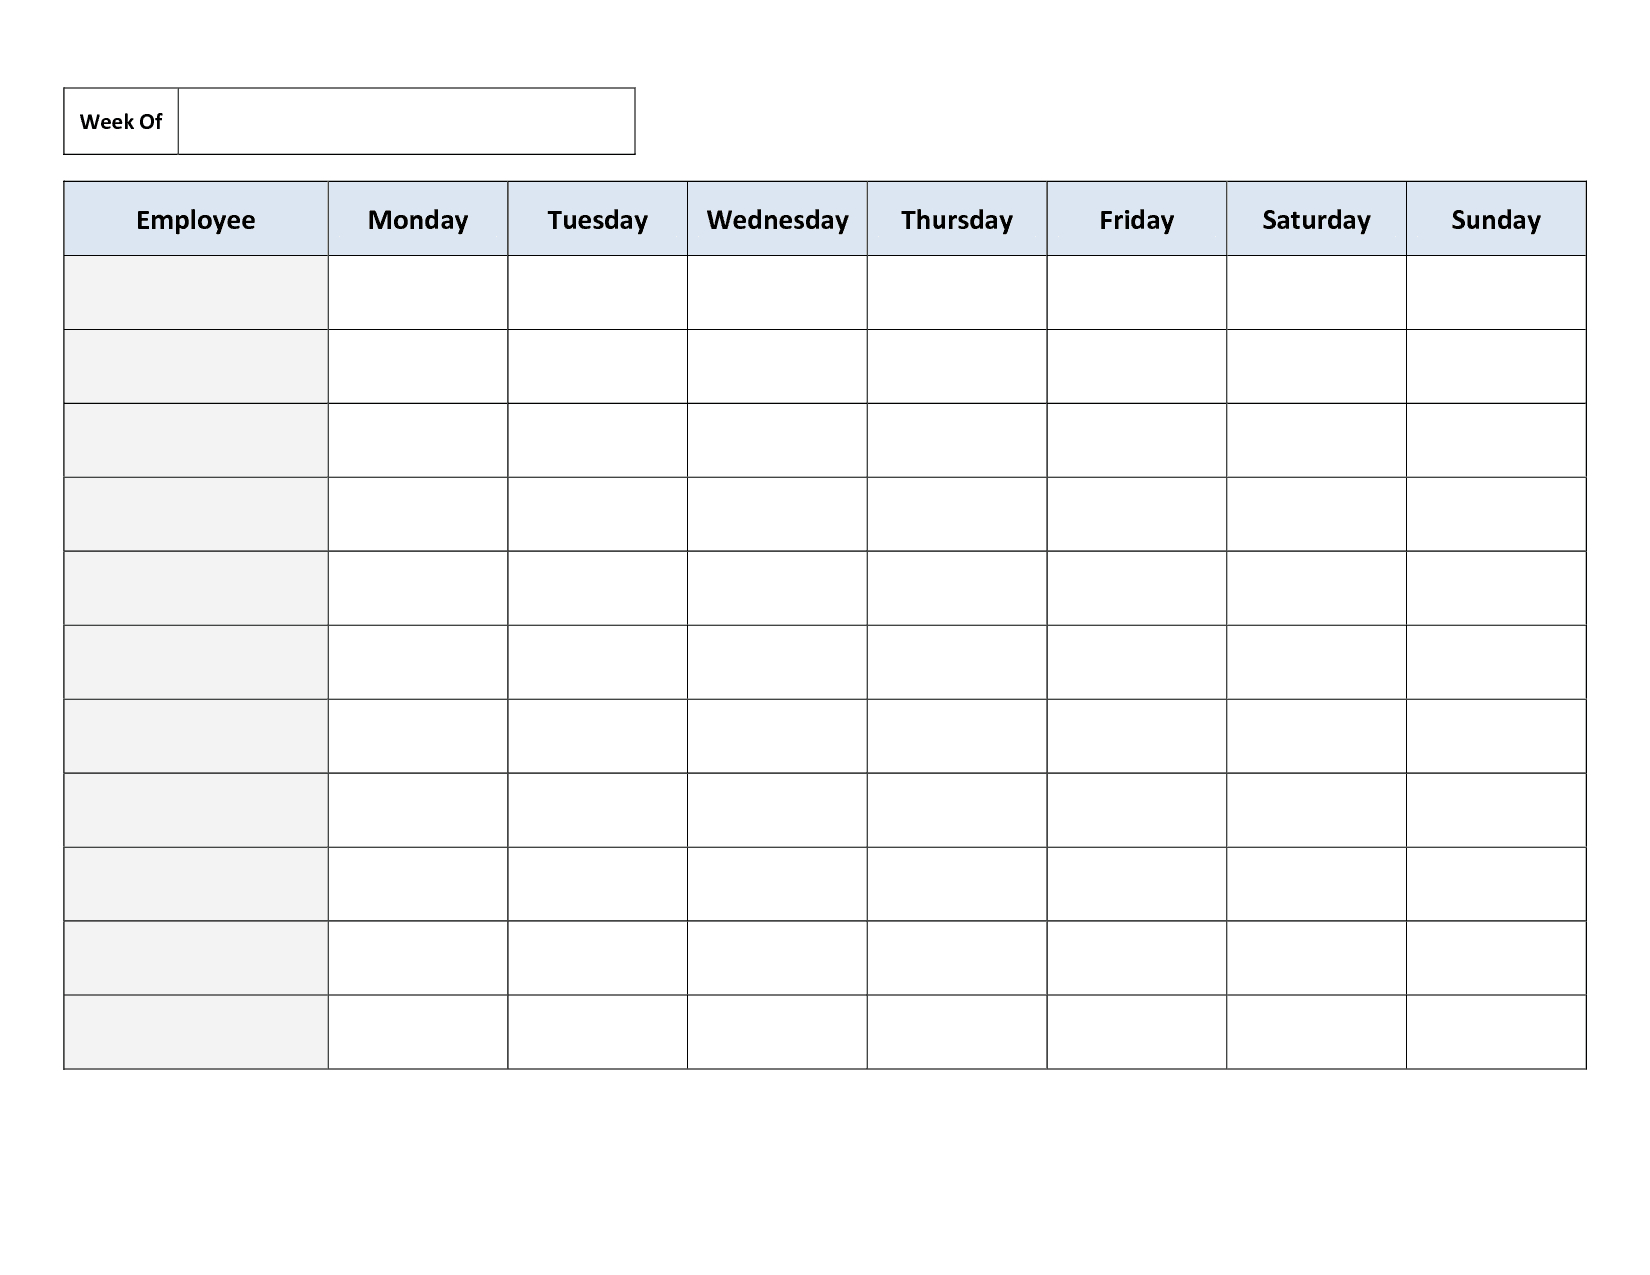 Daily Call Report Format For Medical Representative And Free regarding Sales Call Report Template